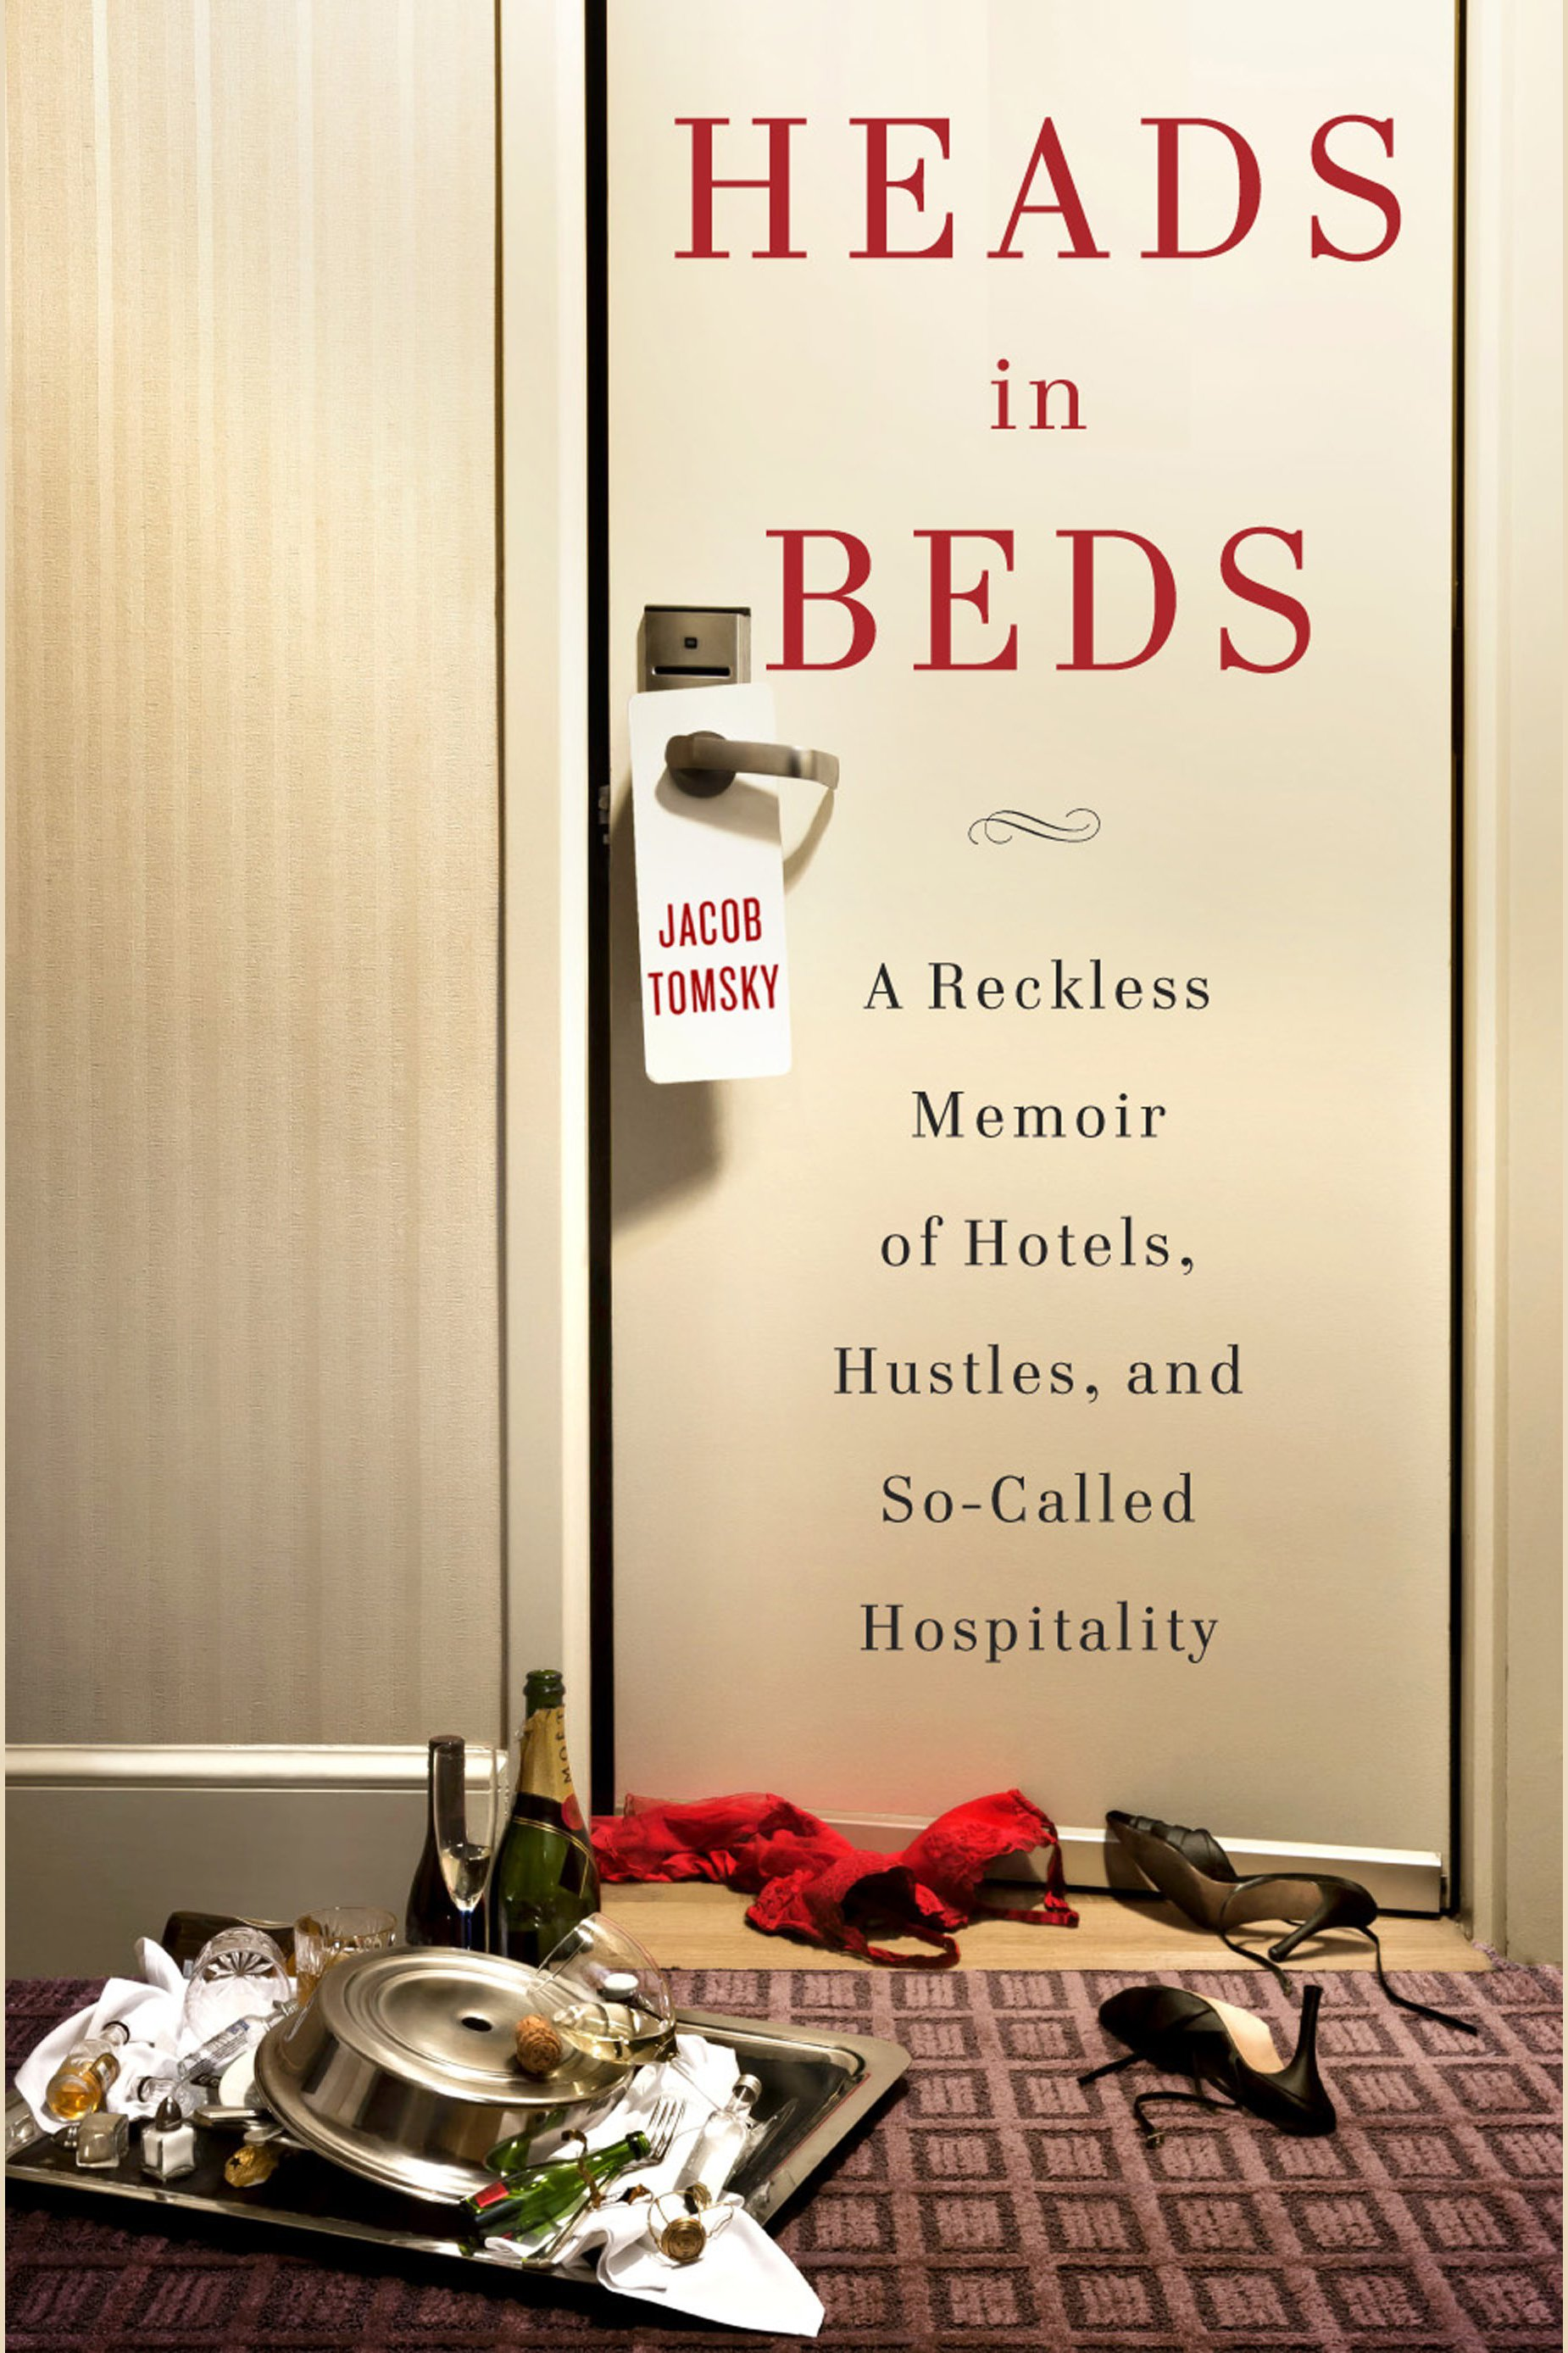 Heads in beds a reckless memoir of hotels, hustles, and so-called hospitality cover image